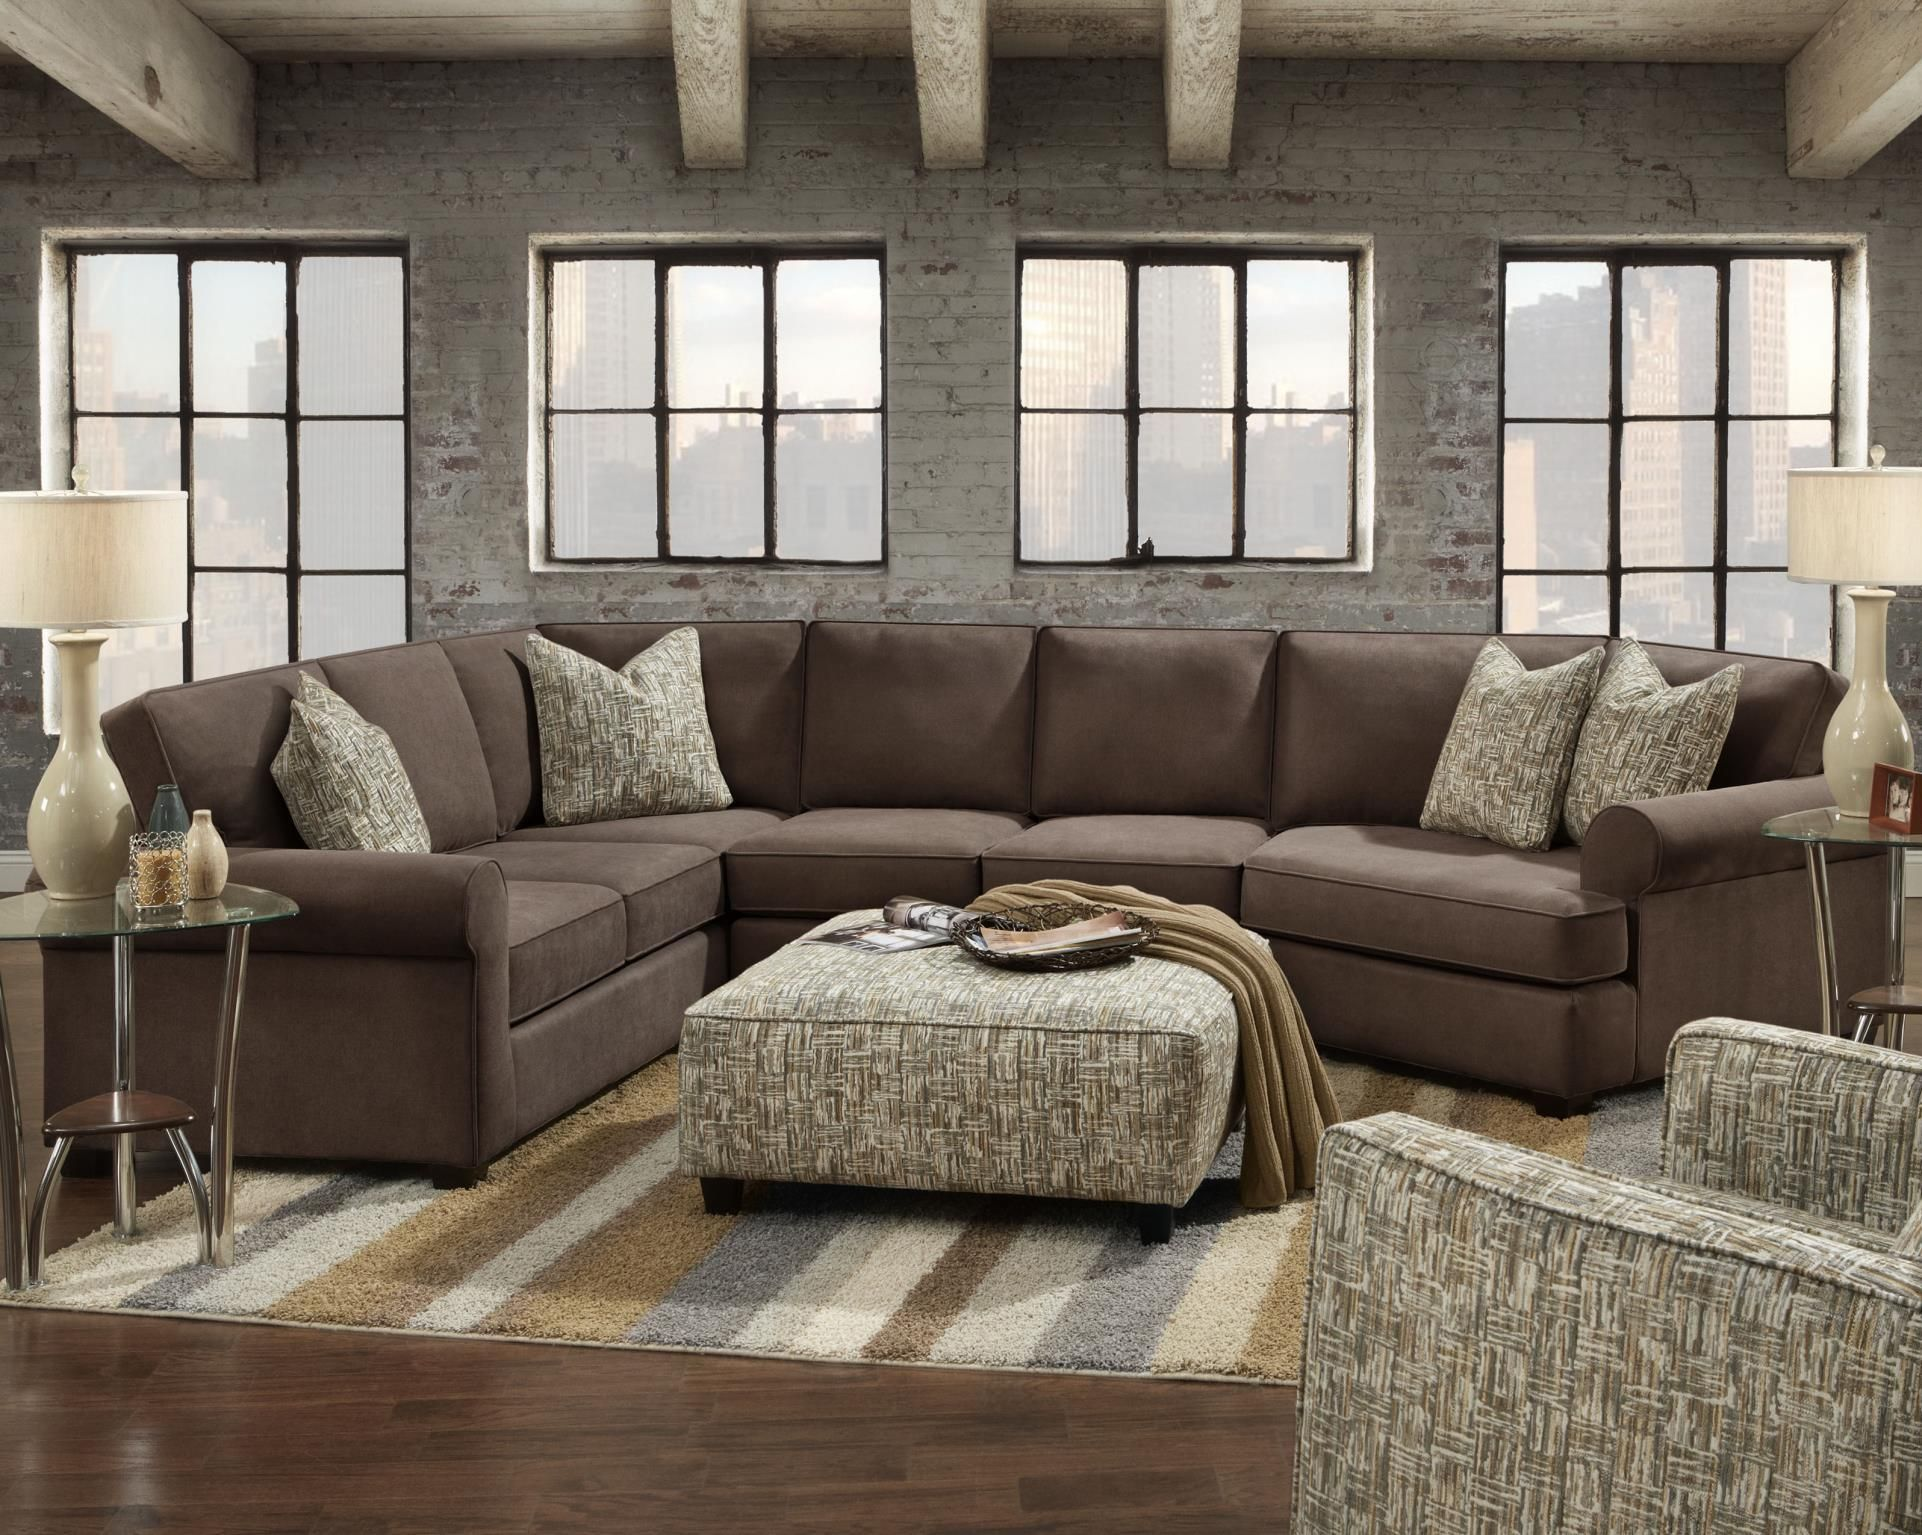 Best 2900 3 Piece Sectional With Right Cuddler By Fusion 400 x 300